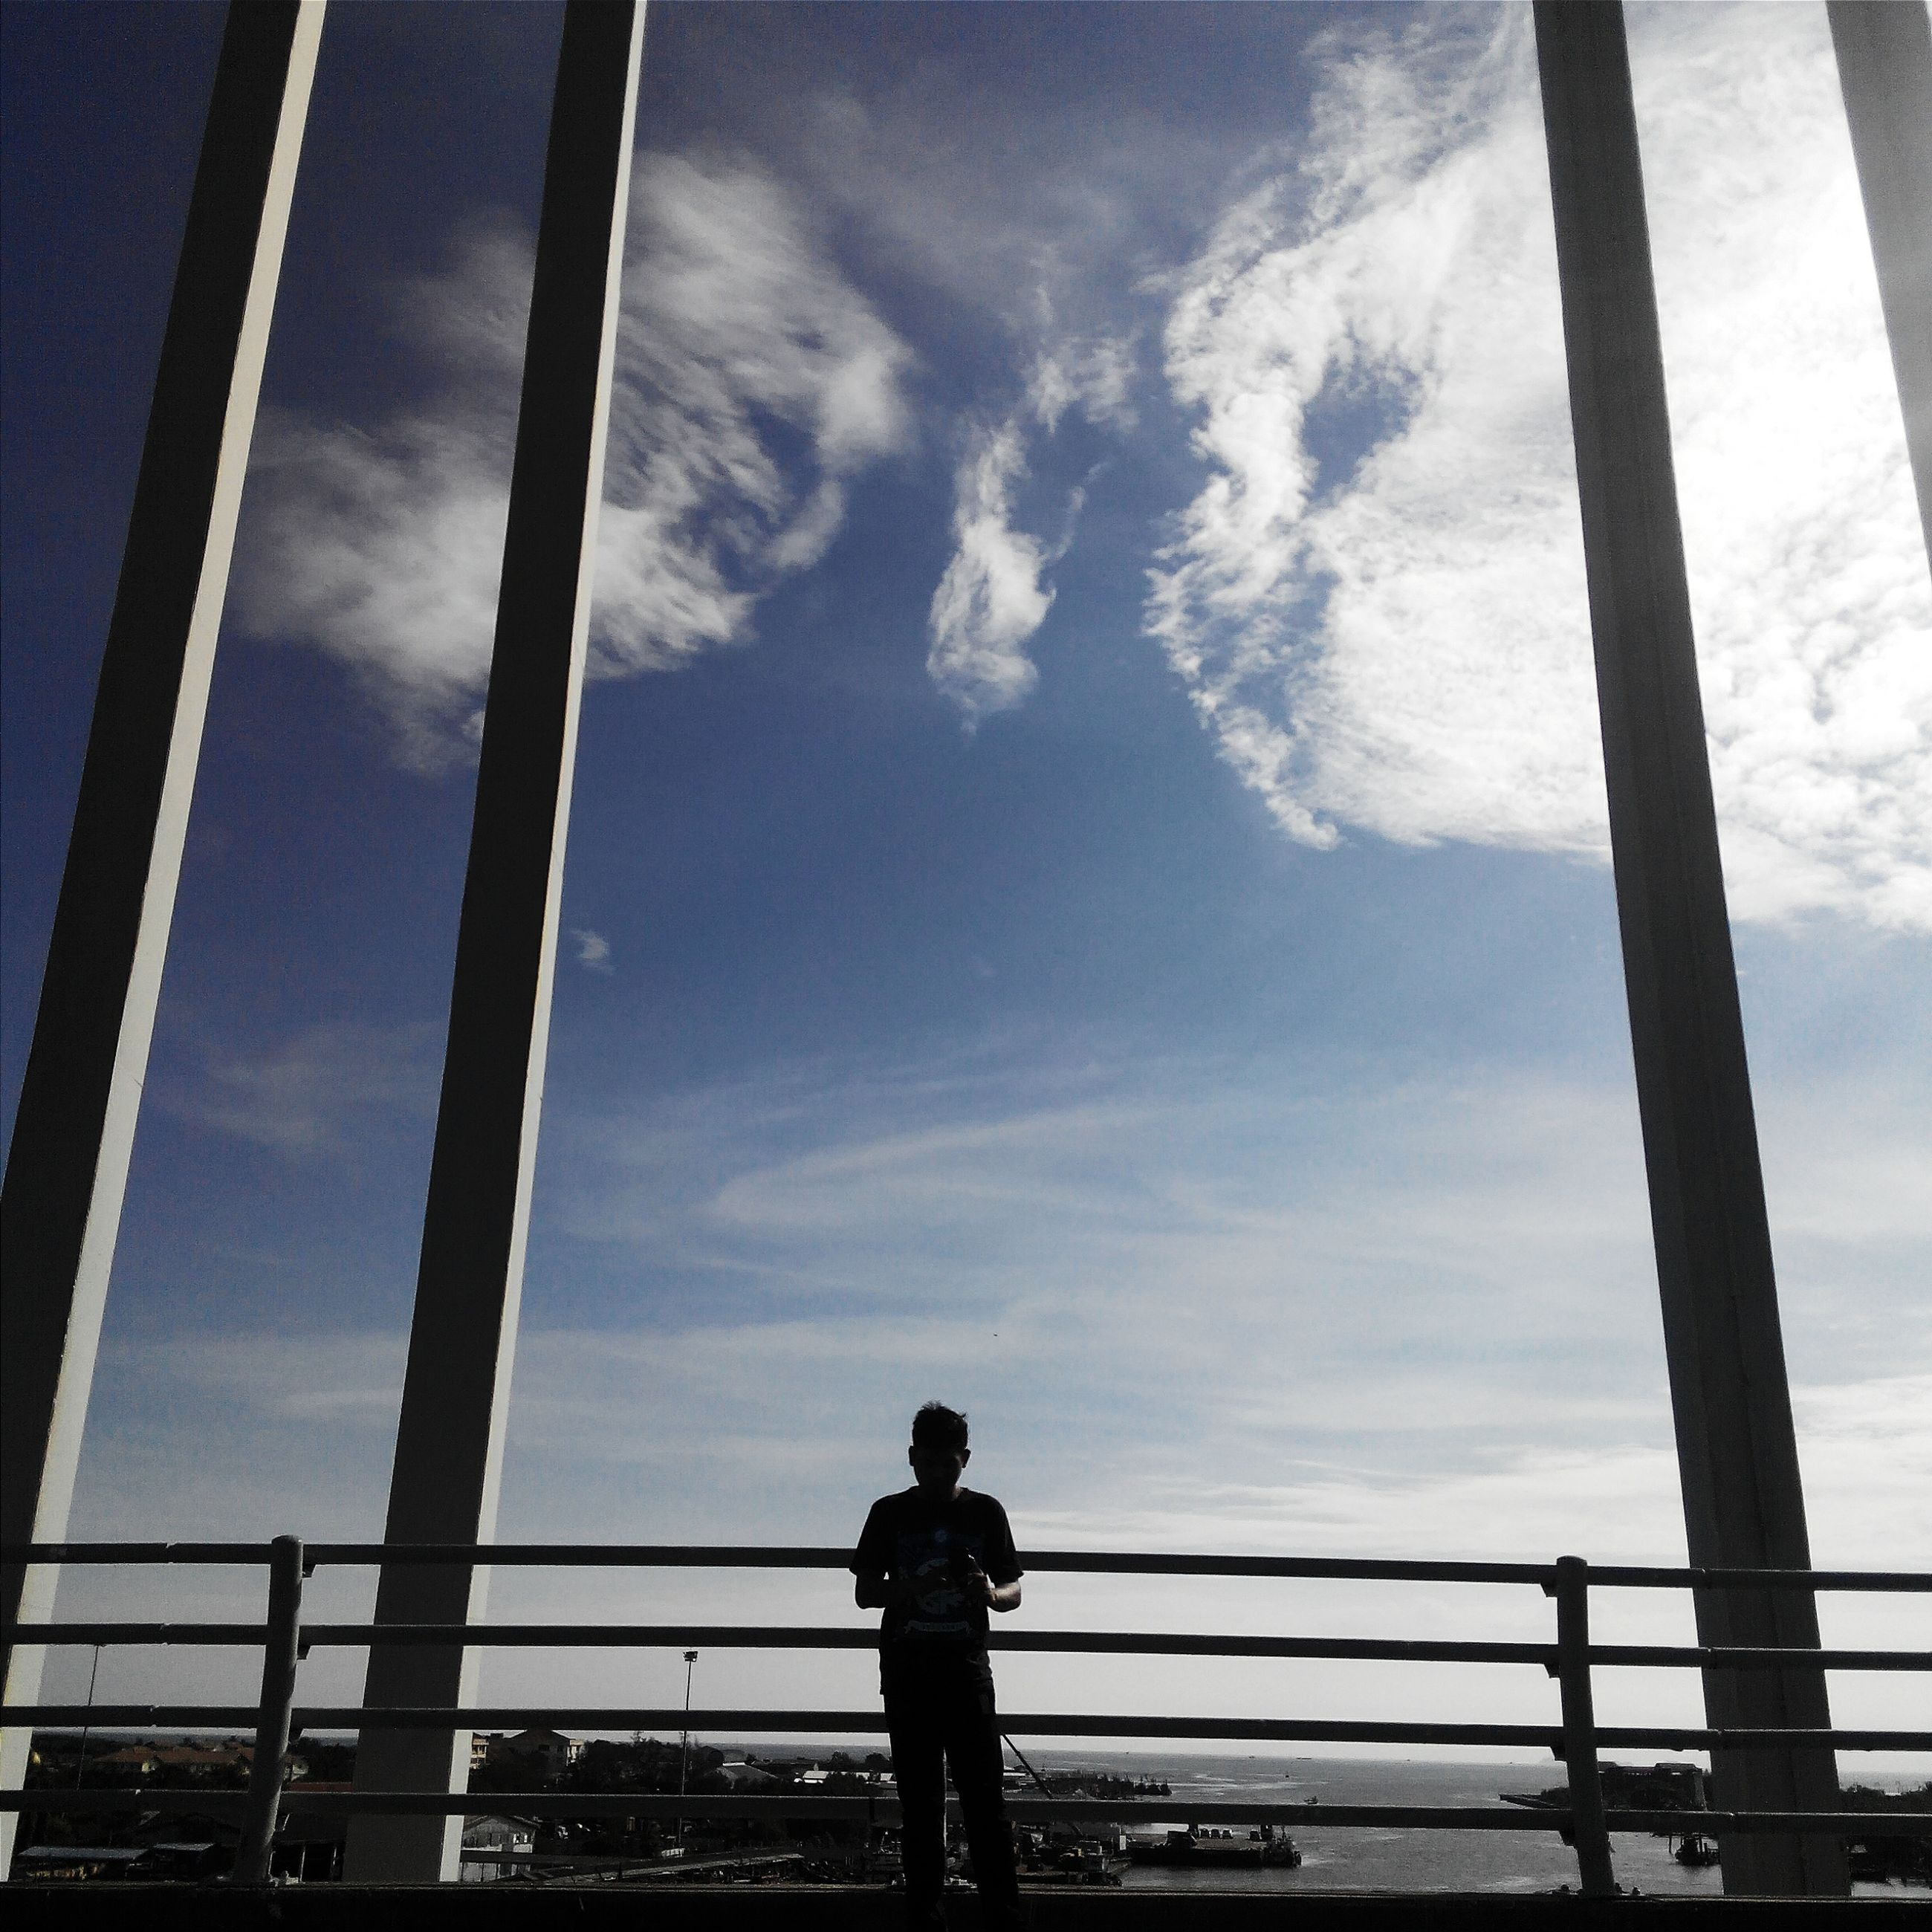 sky, railing, low angle view, cloud - sky, built structure, silhouette, standing, architecture, lifestyles, men, cloud, leisure activity, day, outdoors, rear view, bridge - man made structure, street light